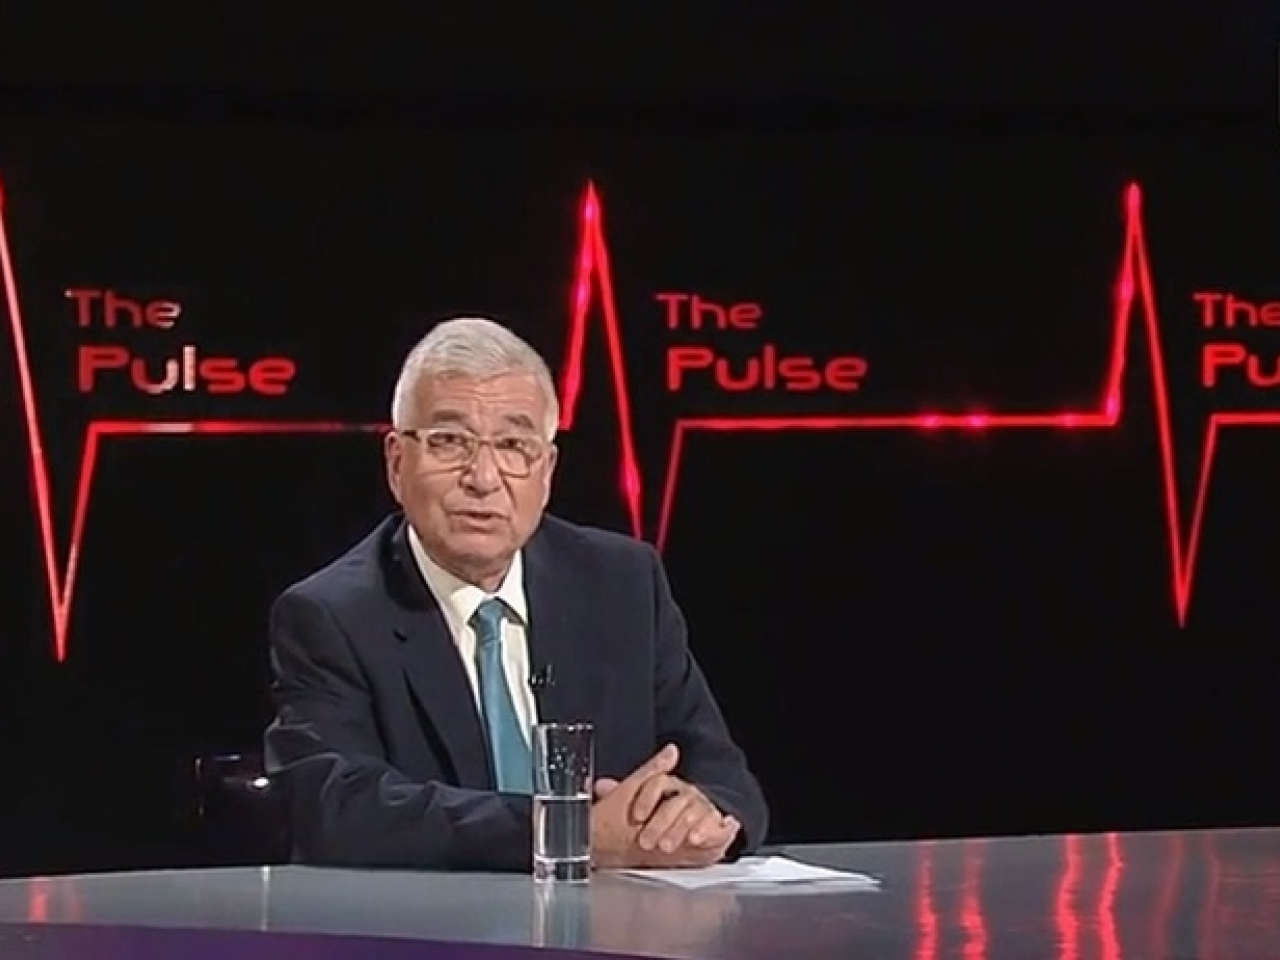 Steve Vines also hosts RTHK's English-language political TV programme, The Pulse, which airs its final episode on Friday before taking a summer break. He is unable to say whether the programme will return. File photo: RTHK